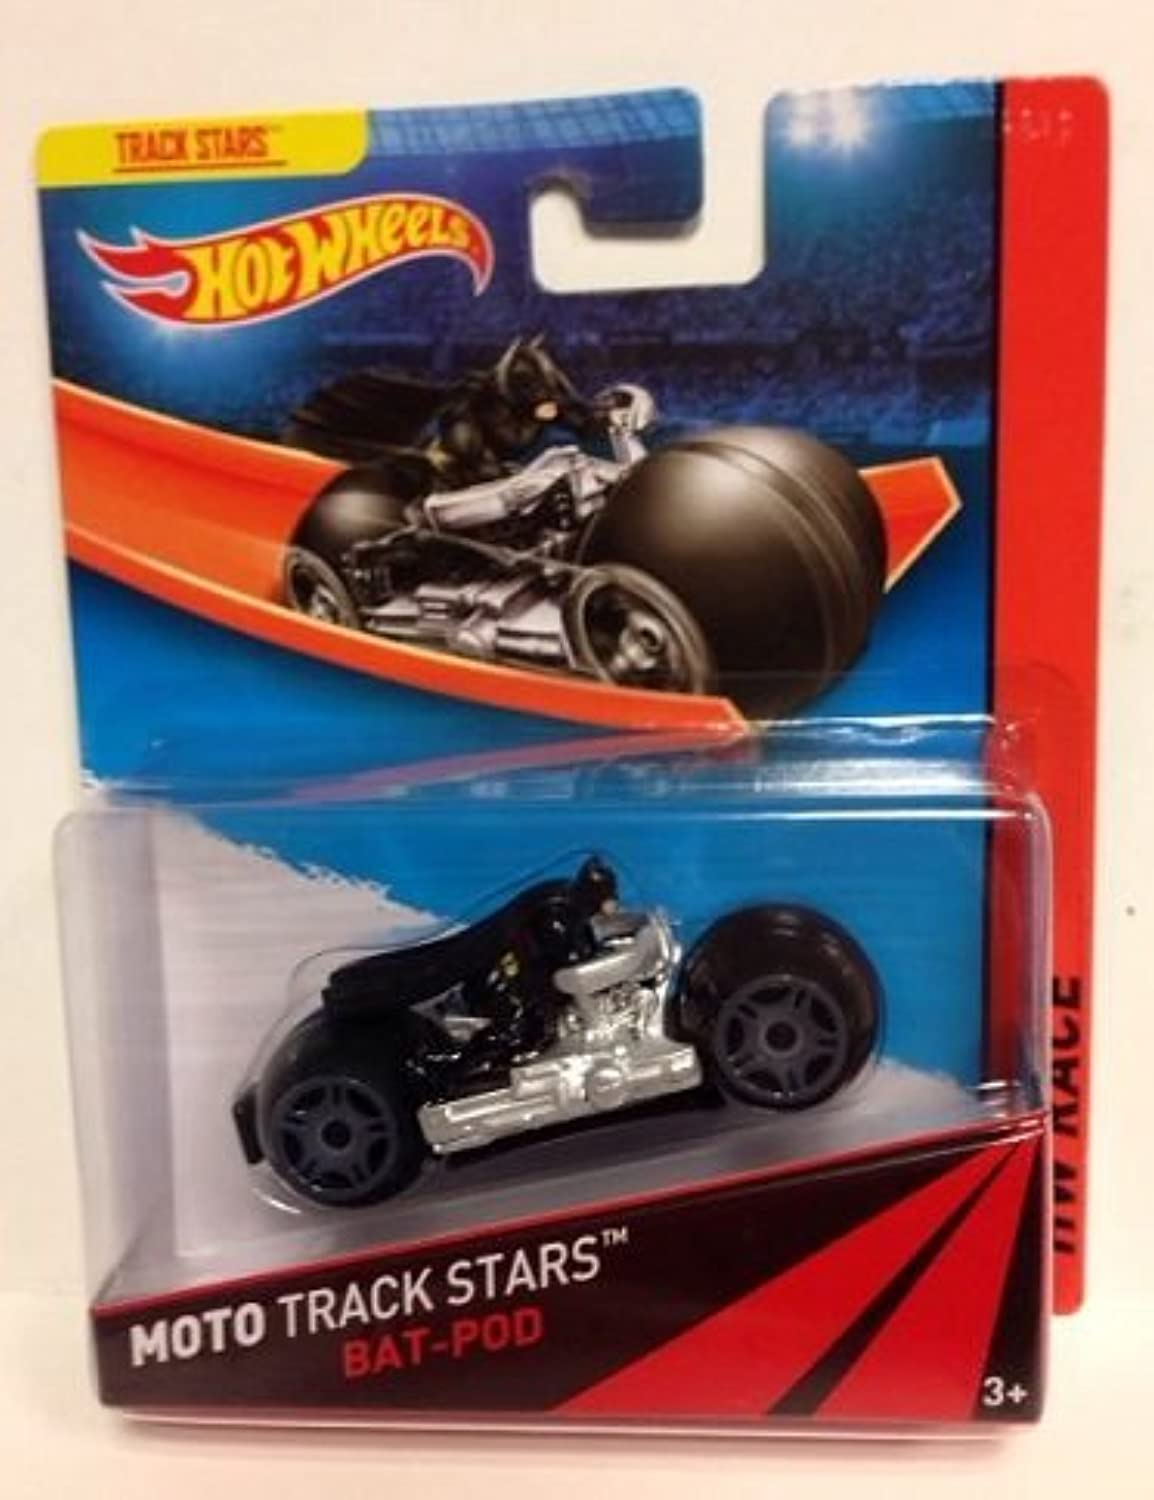 Hot Wheels Moto Track Stars  BatPod by Hot Wheels